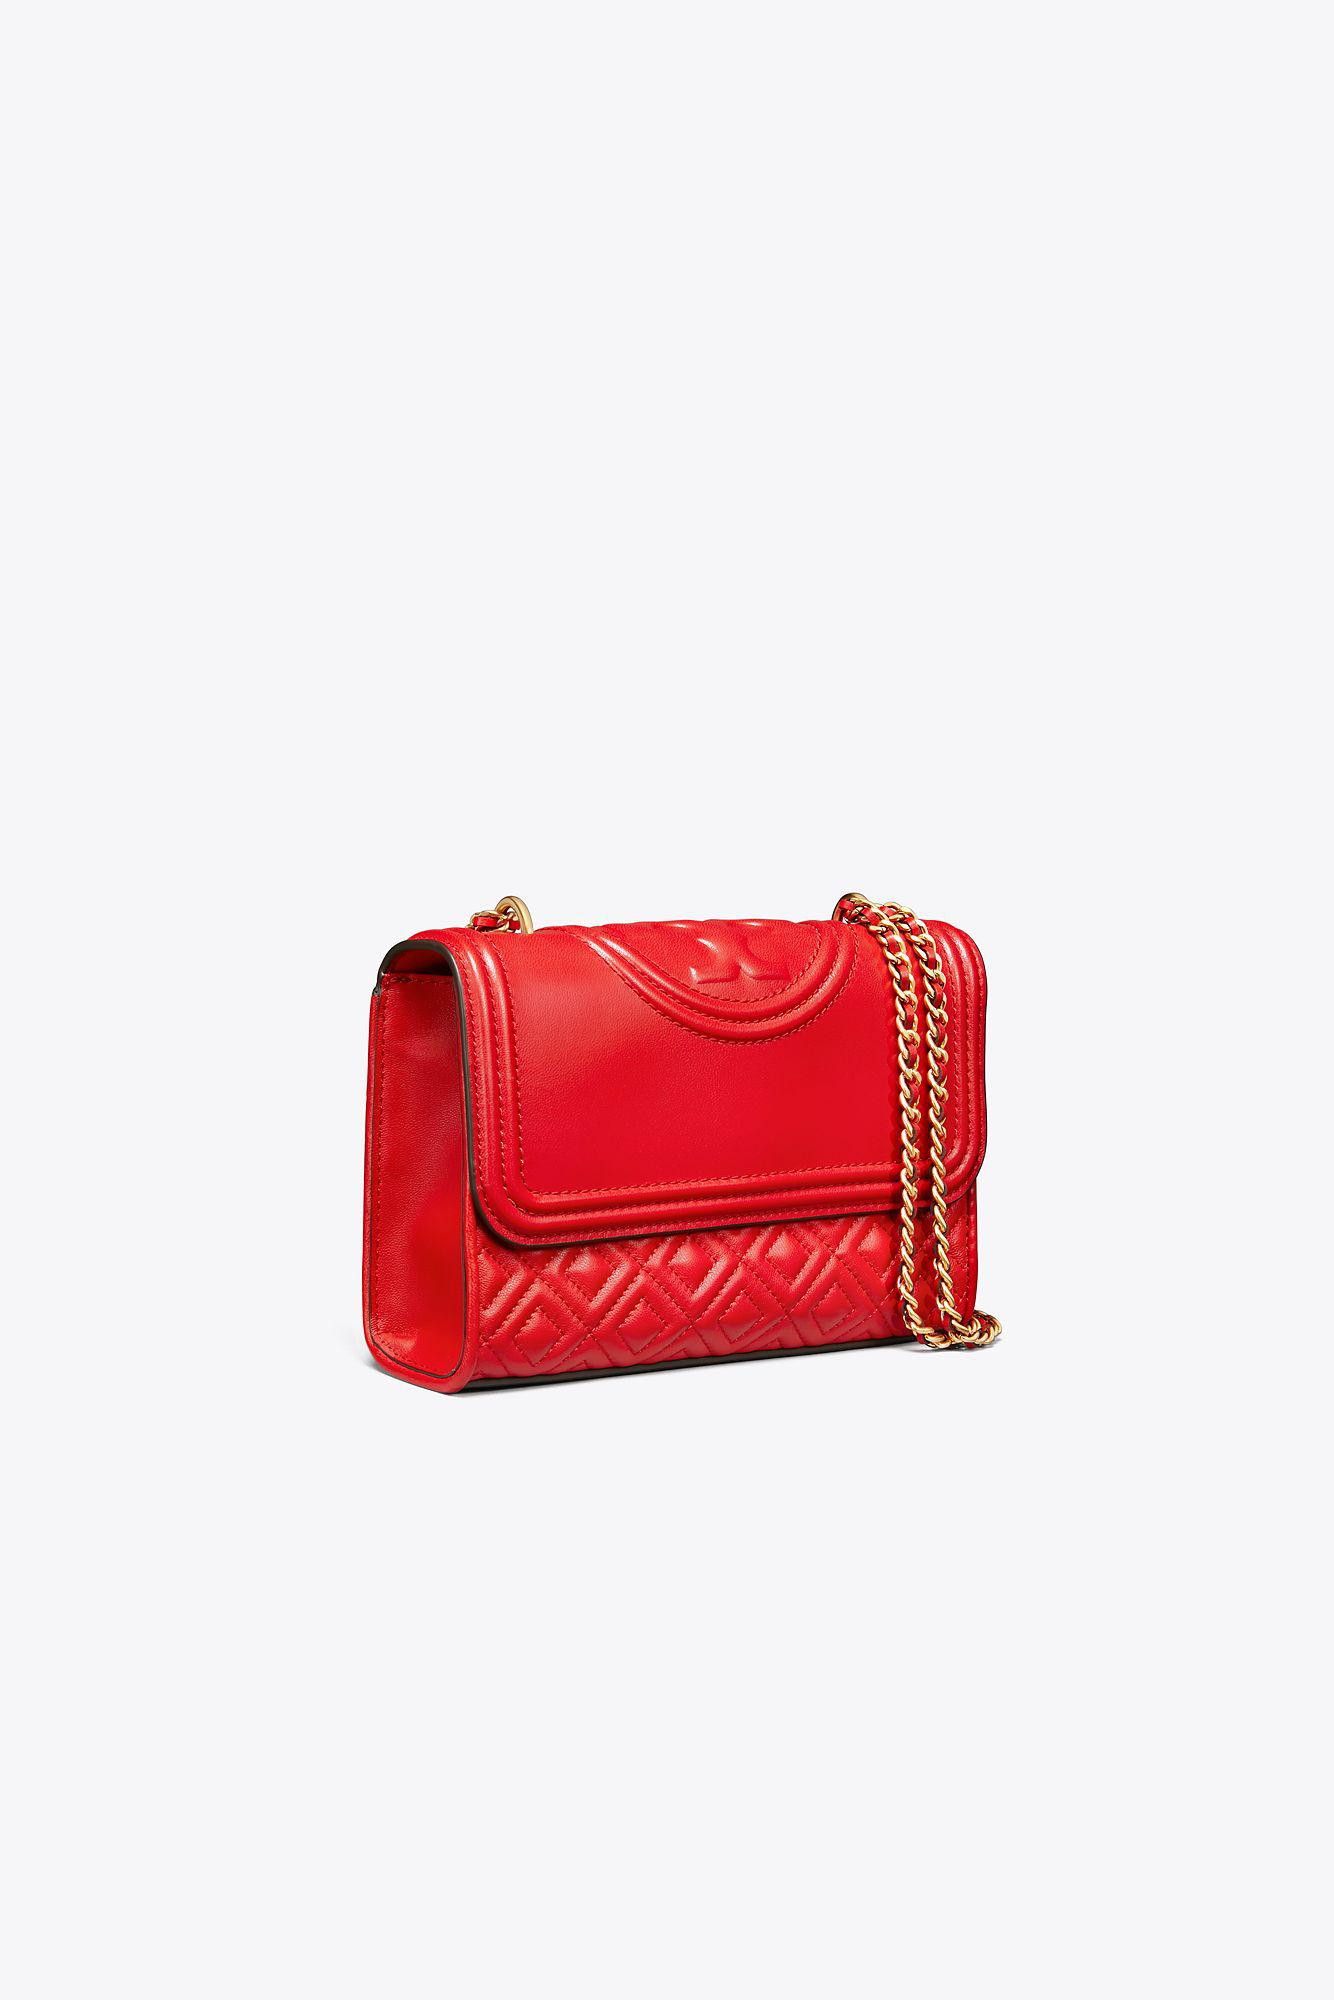 54866529680 Tory Burch - Red Fleming Small Convertible Shoulder Bag - Lyst. View  fullscreen